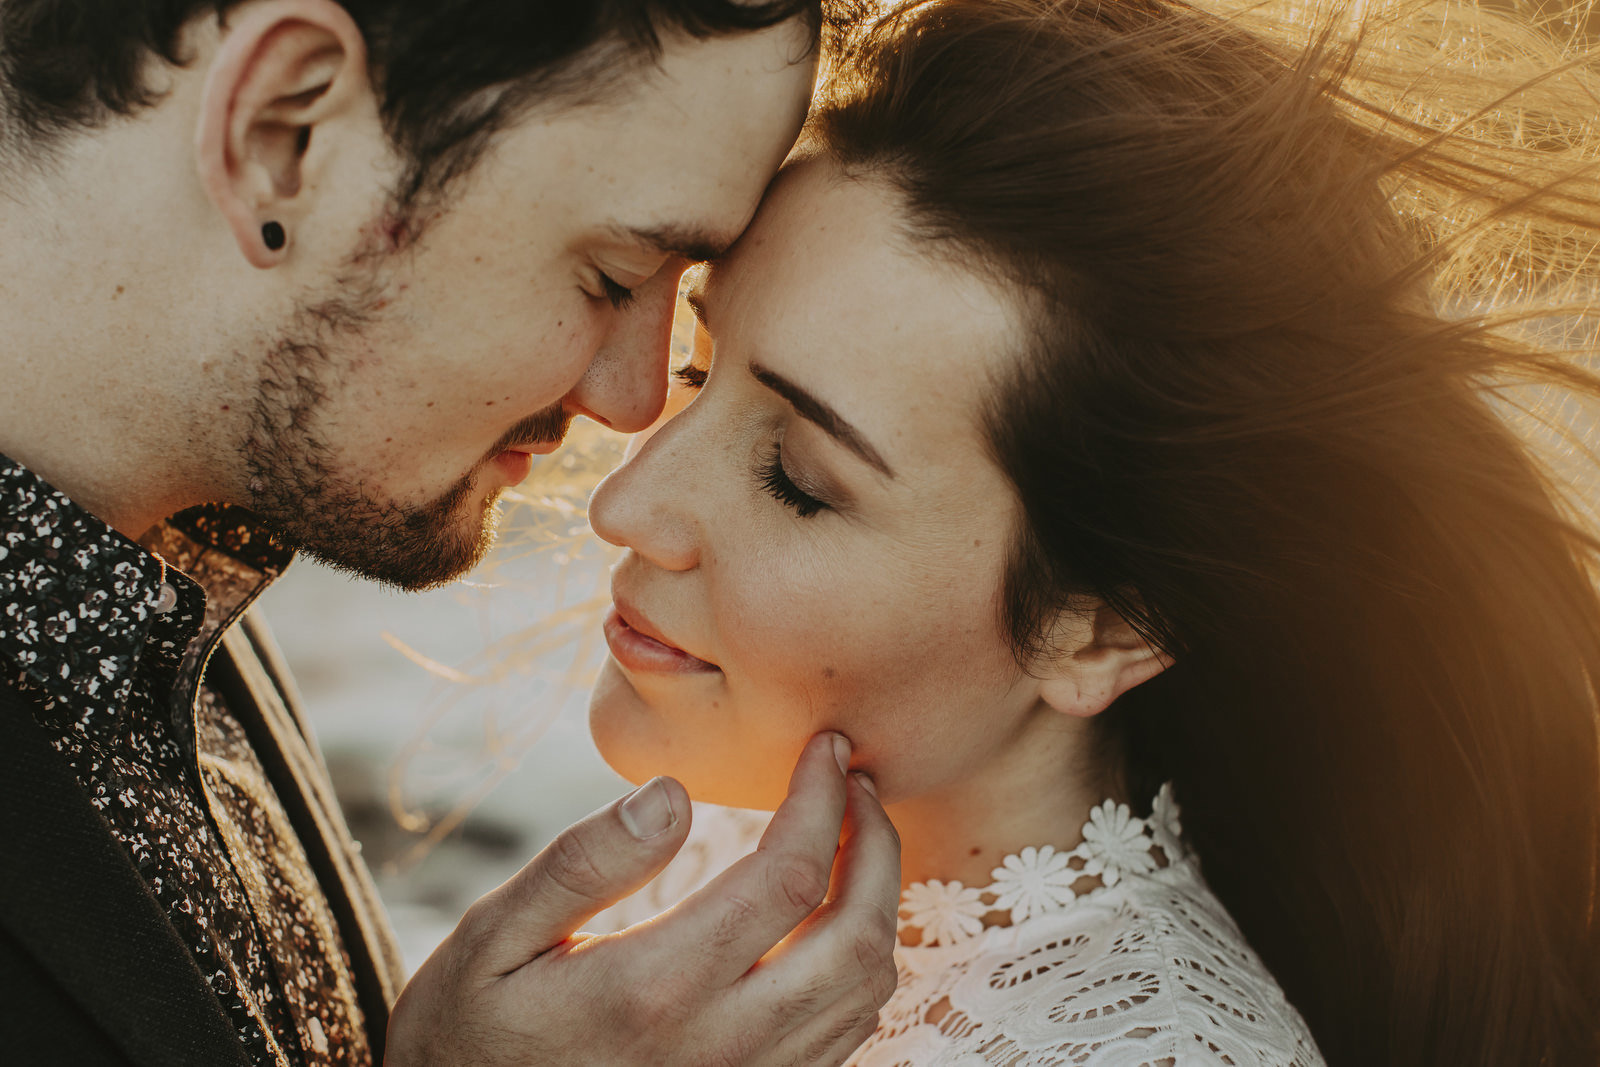 athena-and-camron-sydney-wedding-boho-romance-james-simmons-photography-christian-couple-goals91